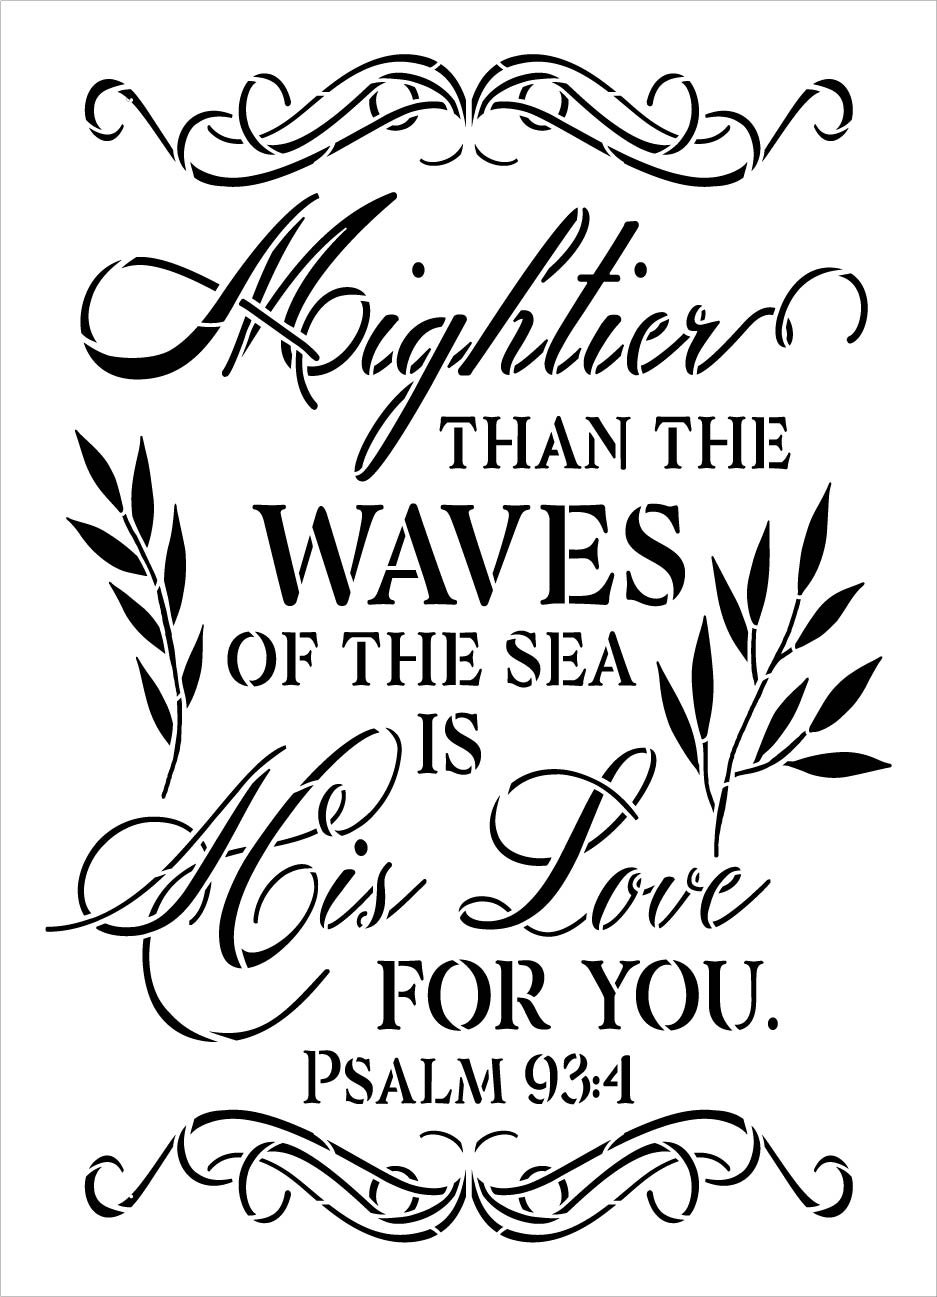 Mightier Than The Waves of The Sea Stencil by StudioR12 | Psalm 93:4 Bible Verse Word Art | DIY Faith Home Decor | Select Size